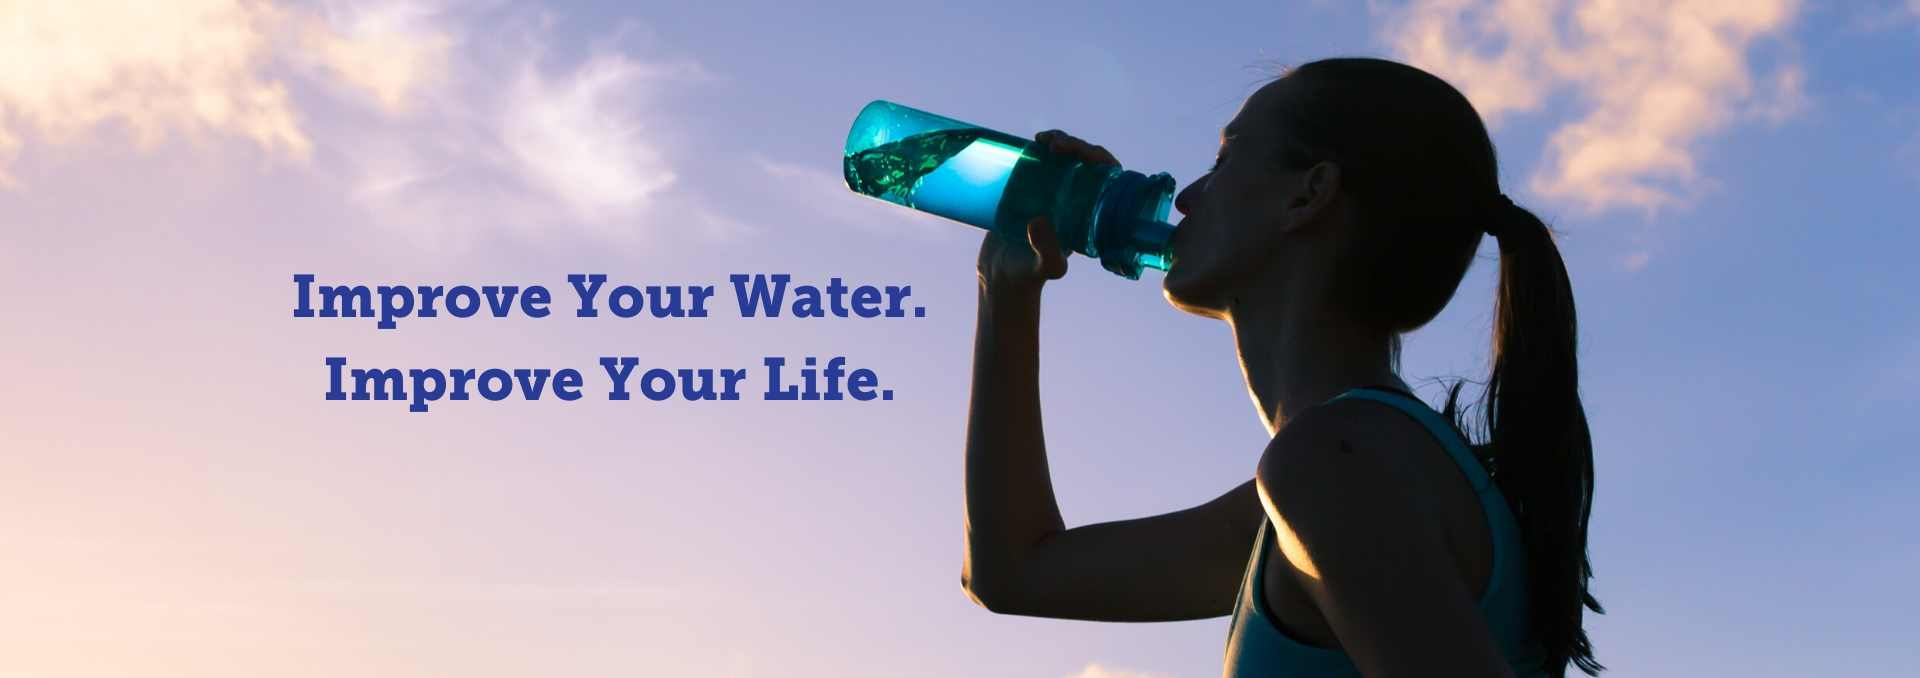 Improve Your Water. Improve Your Life. Woman drinks from water bottle.